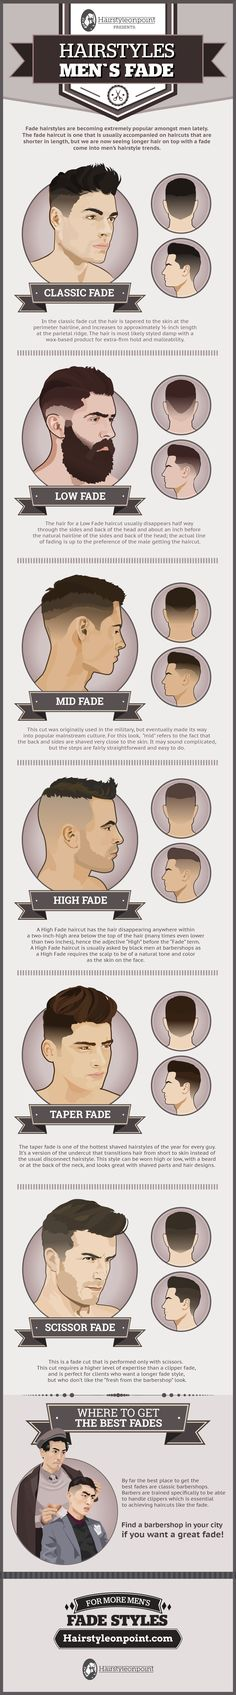 Trendy Hair Styling für Männer mit Undercut 2016 [Infographic] – More İdeas Trendy Haircuts, Haircuts For Men, Haircut Men, Haircut Style, Barber Haircuts, How To Fade Haircut, Hairstyle Fade, Taper Fade Haircut, Modern Haircuts